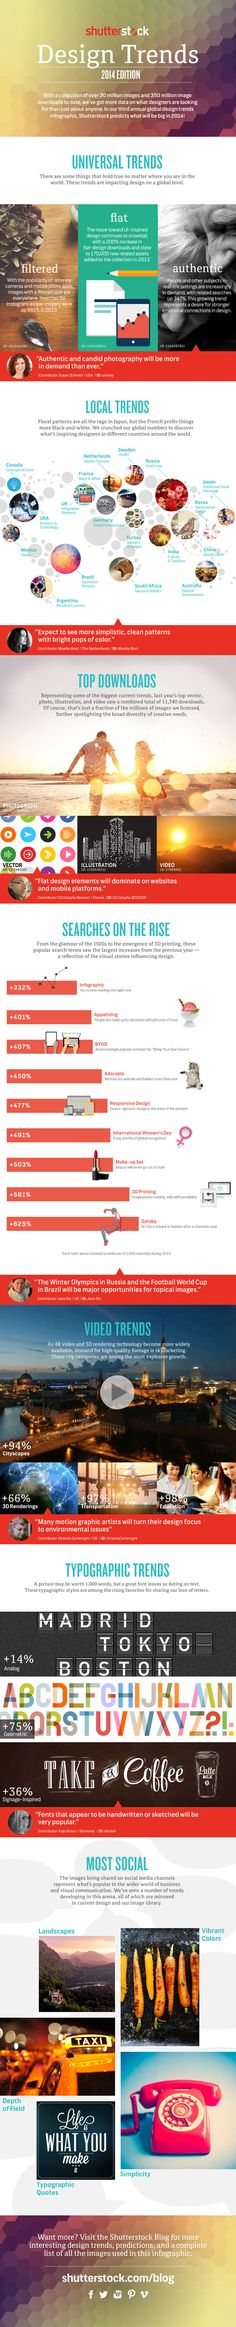 Shutterstock Global Design Trends 2014 infographic - a really informative read for all creatives - popular downloads, searches,trends, colours, fonts